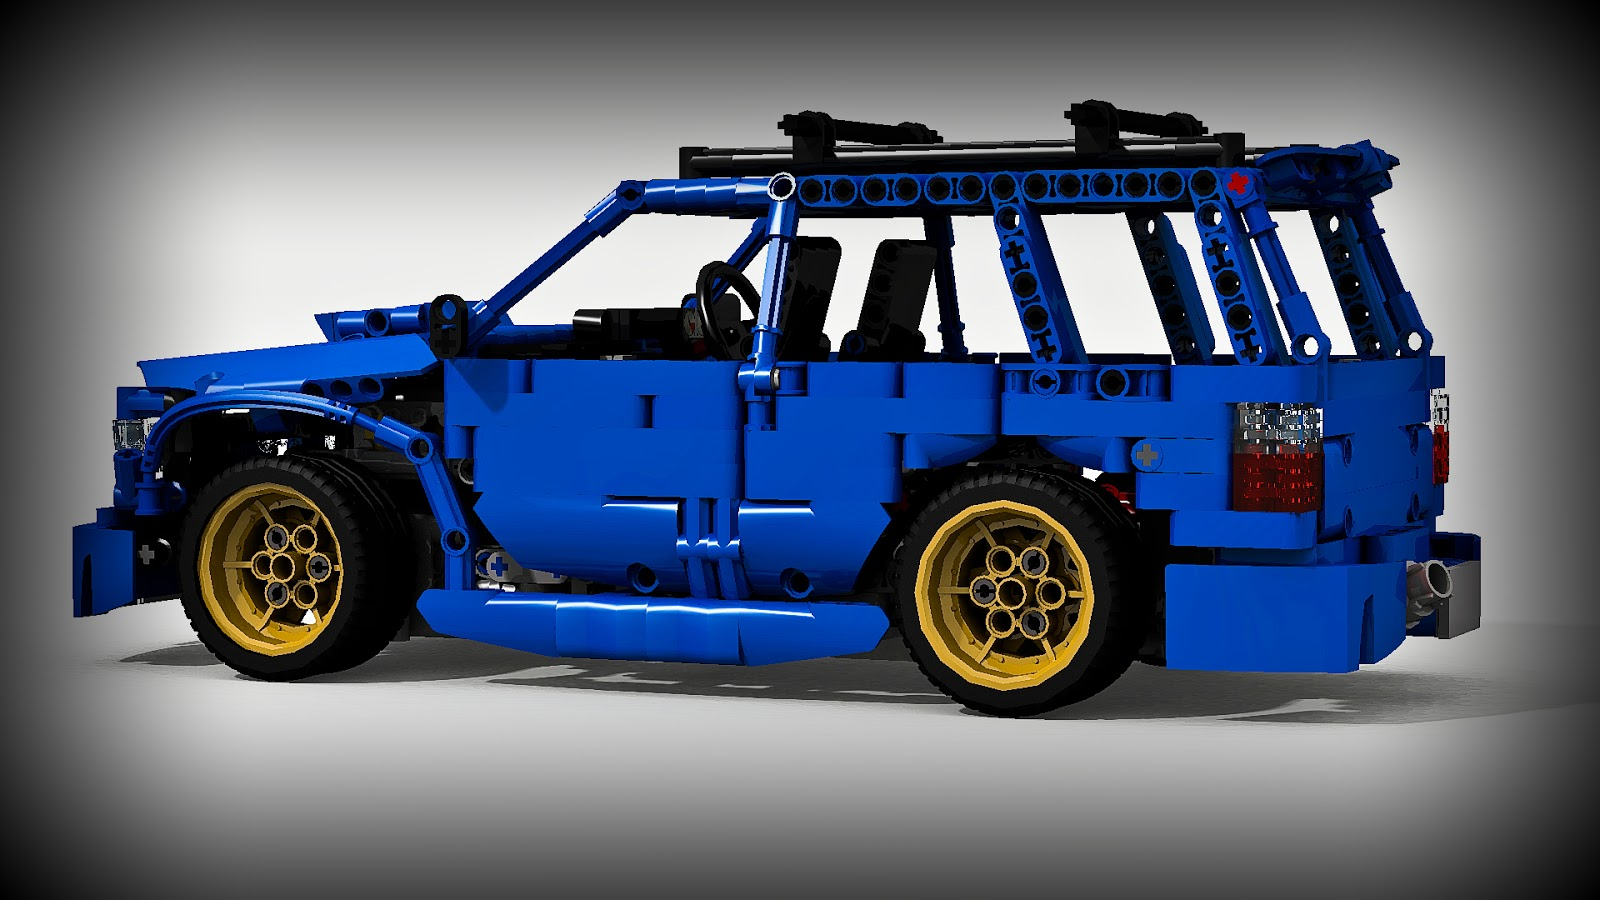 filsawgood Lego Technic Creations                               2015 Lego Technic Subaru Forester